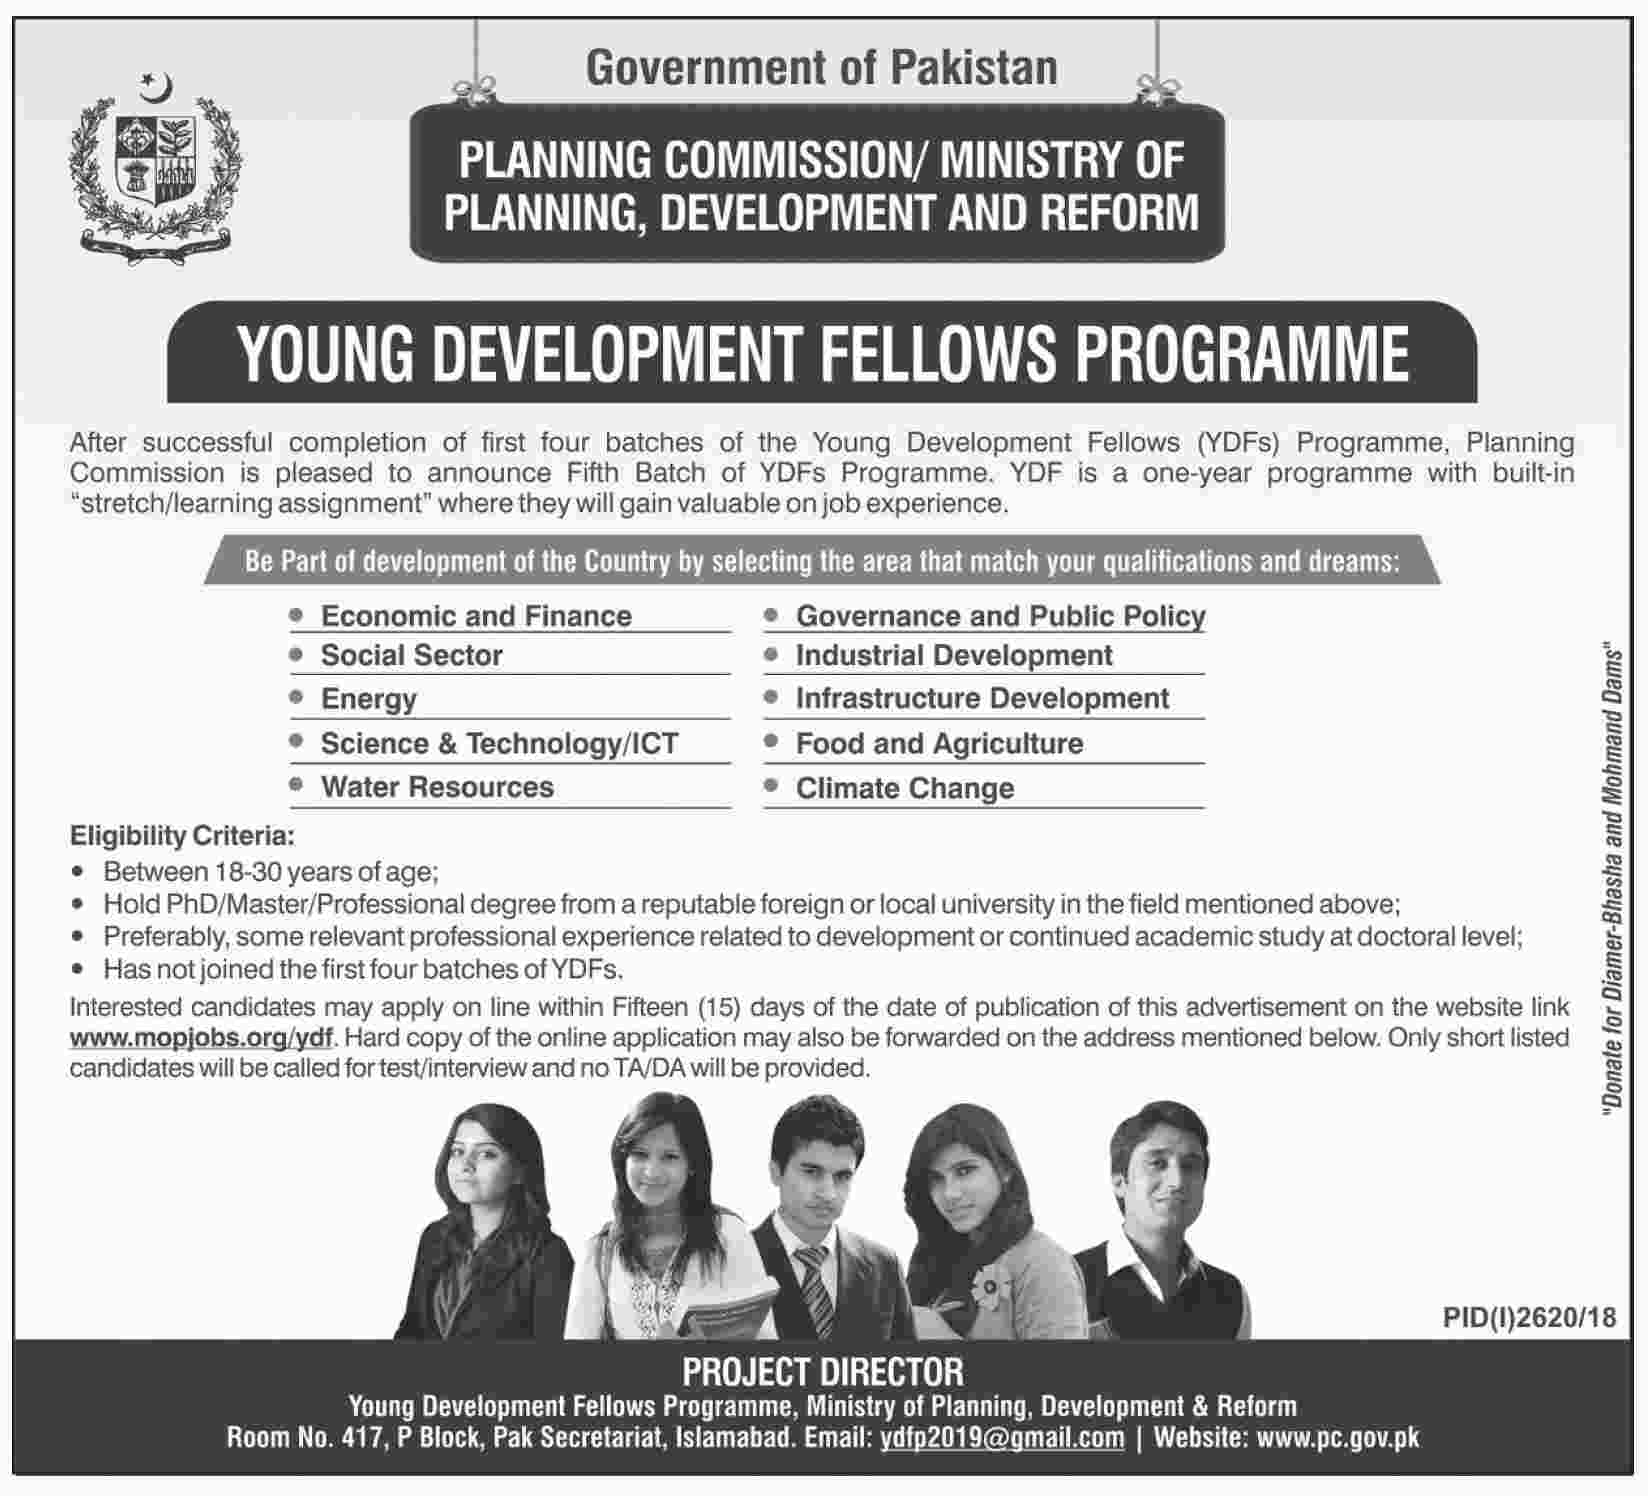 Young Development Fellows (Fifth Batch of YDFs Programme)  - Planning Commission/ Ministry of Planning